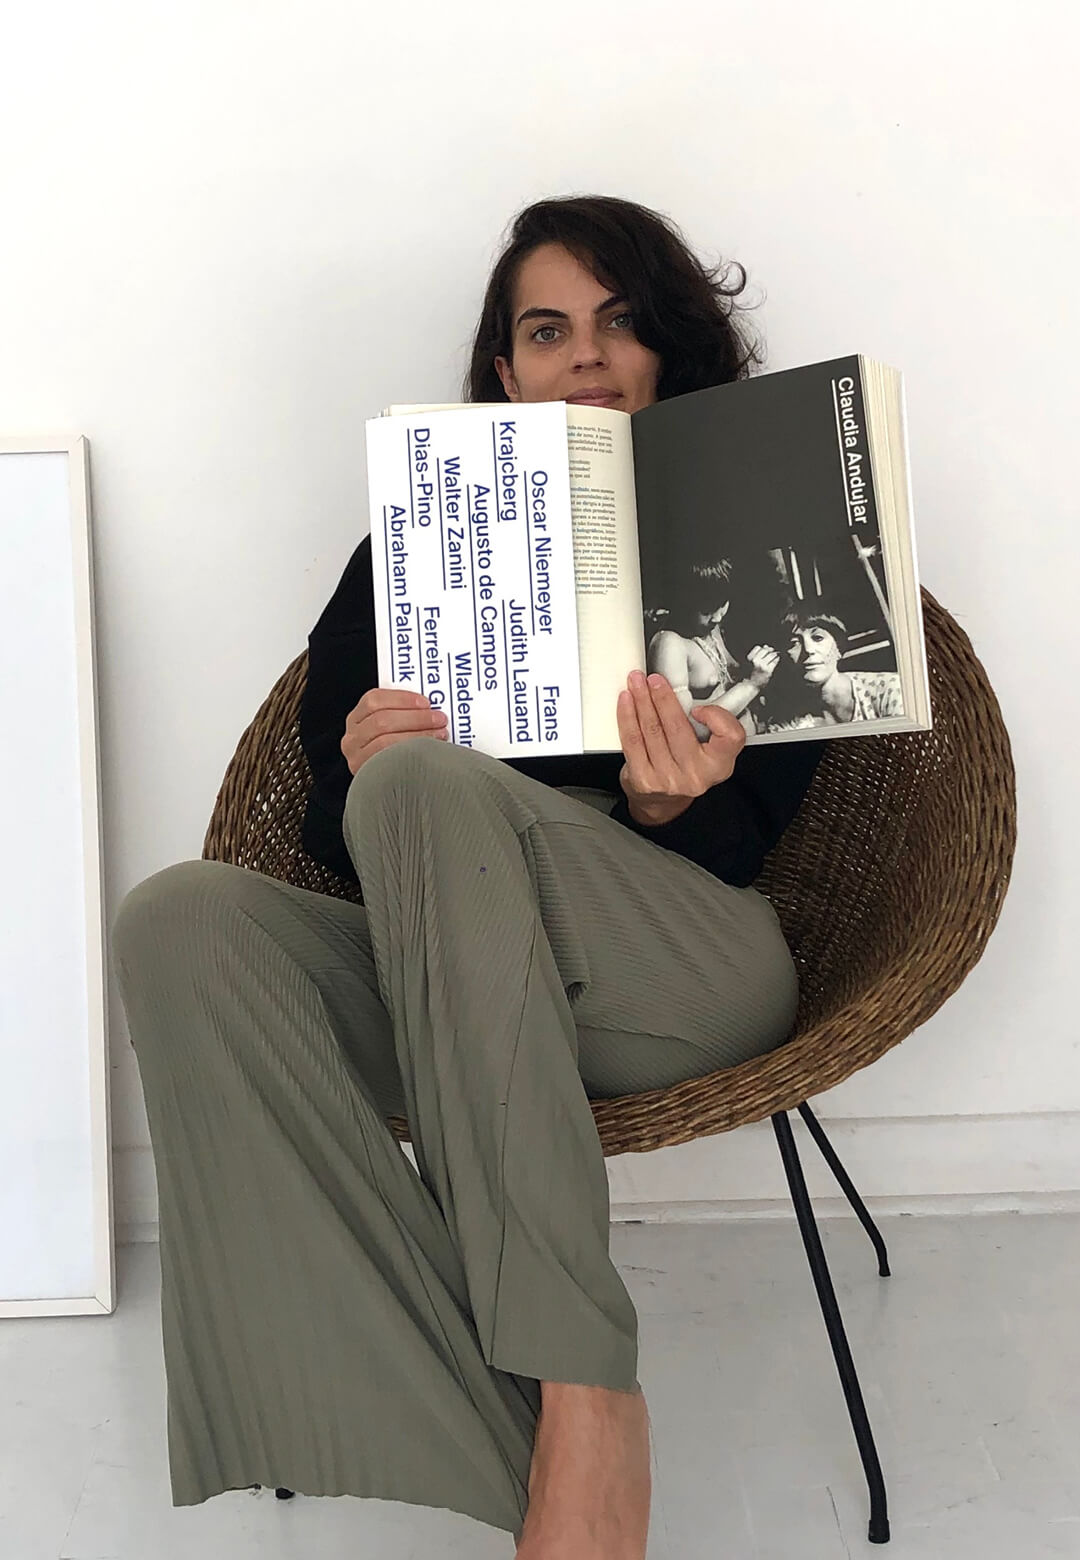 Architect Mariana Schmidt is reading 'Entrevistas Brasileiras: Volume 1' by Hans Ulrich Obrist – the curator and director of Serpentine Gallery, London | What Am I Reading | Mariana Schmidt | Entrevistas Brasileiras: Volume 1| STIRworld